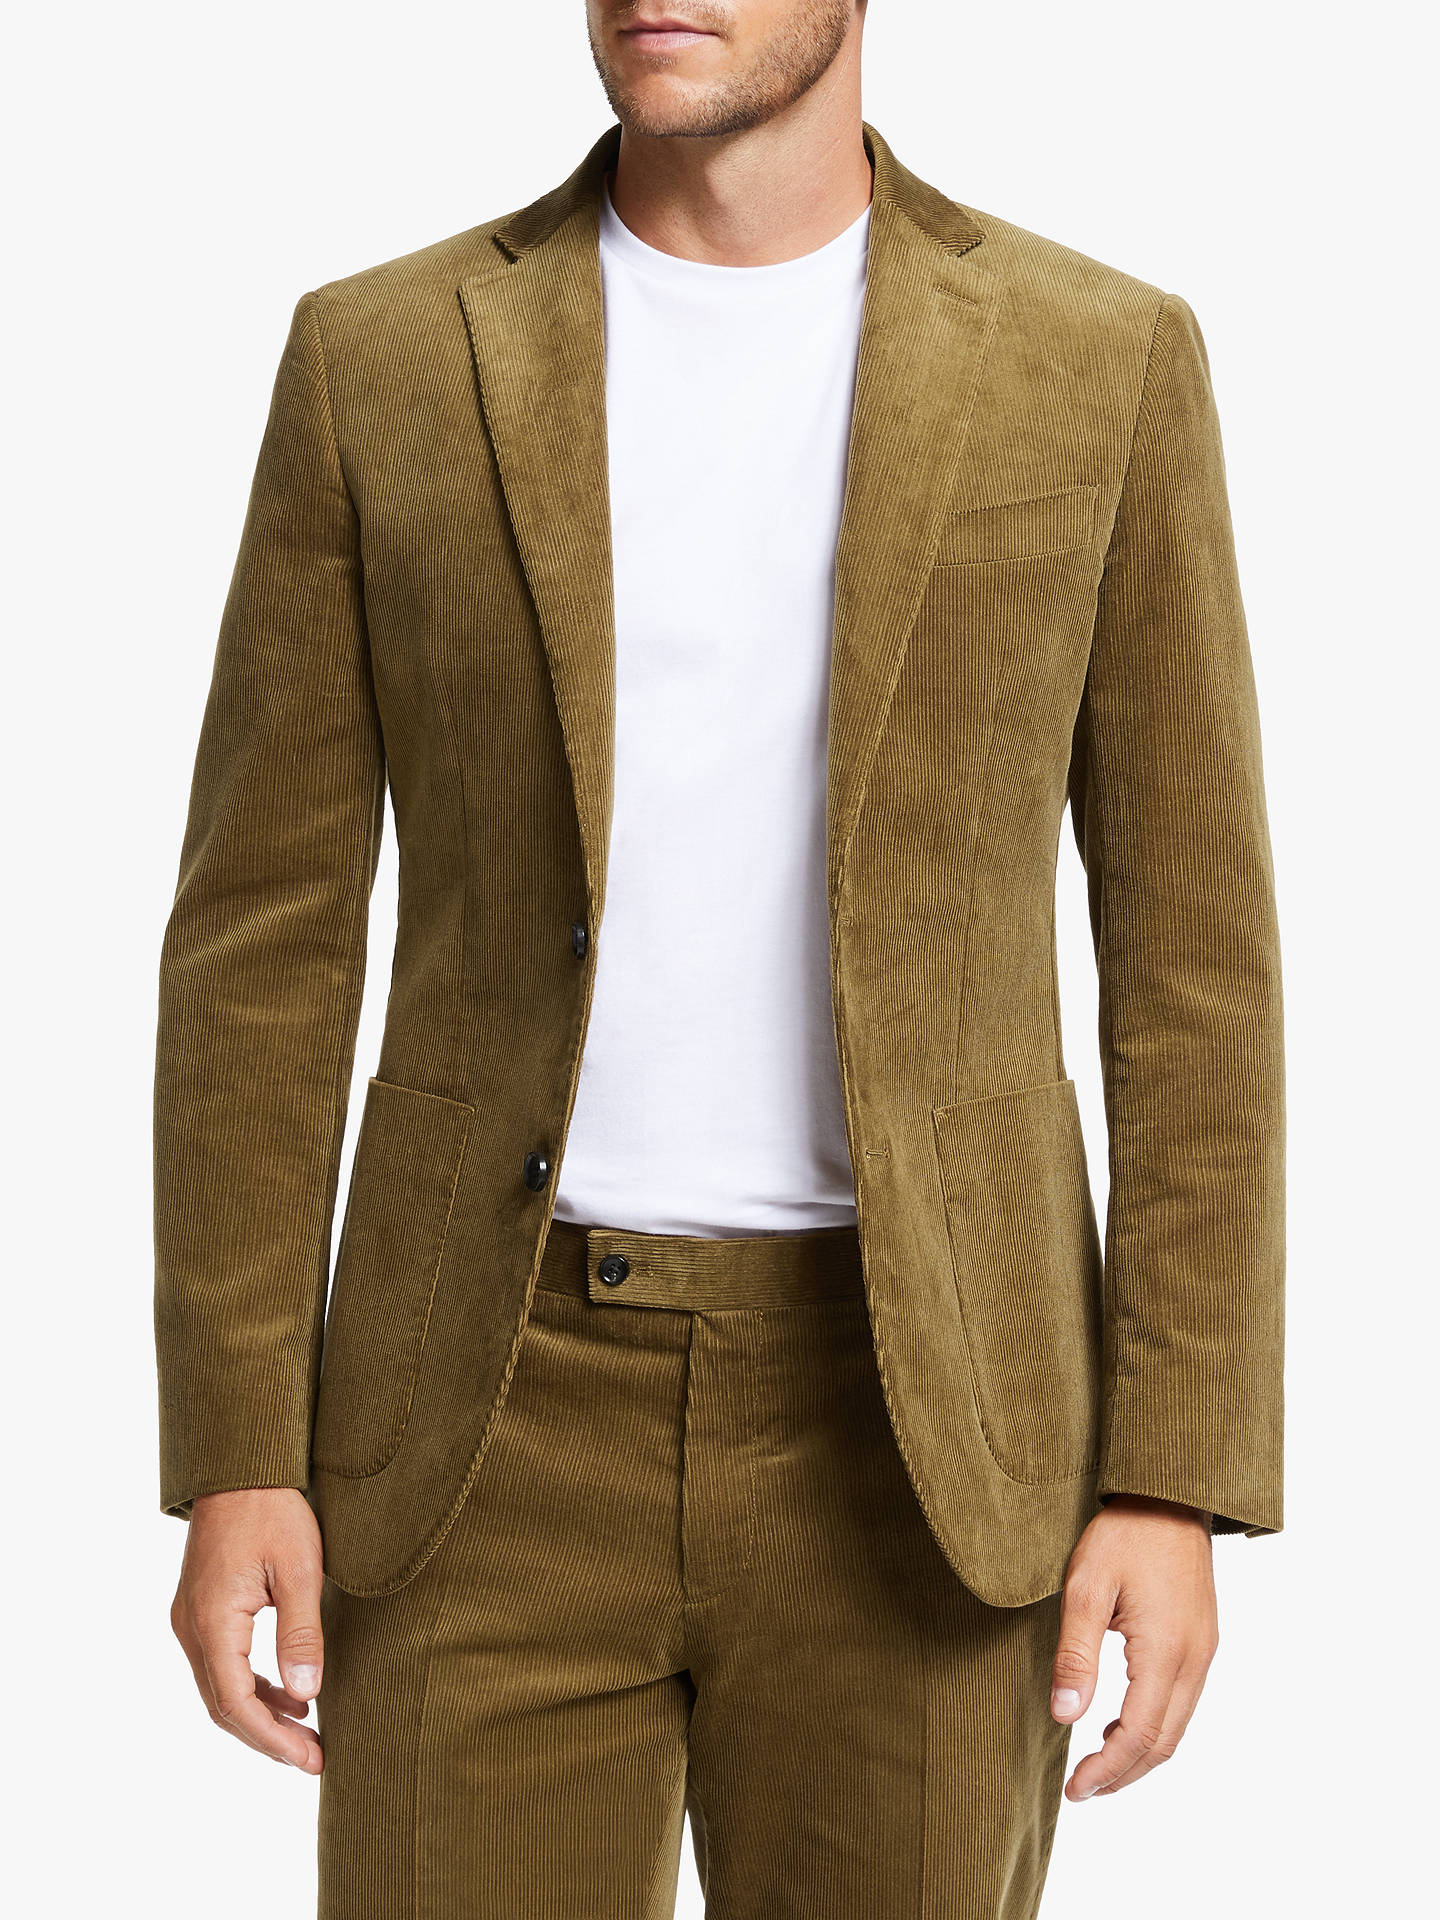 Buy John Lewis & Partners Cotton Corduroy Suit Jacket, Sand, 42S Online at johnlewis.com